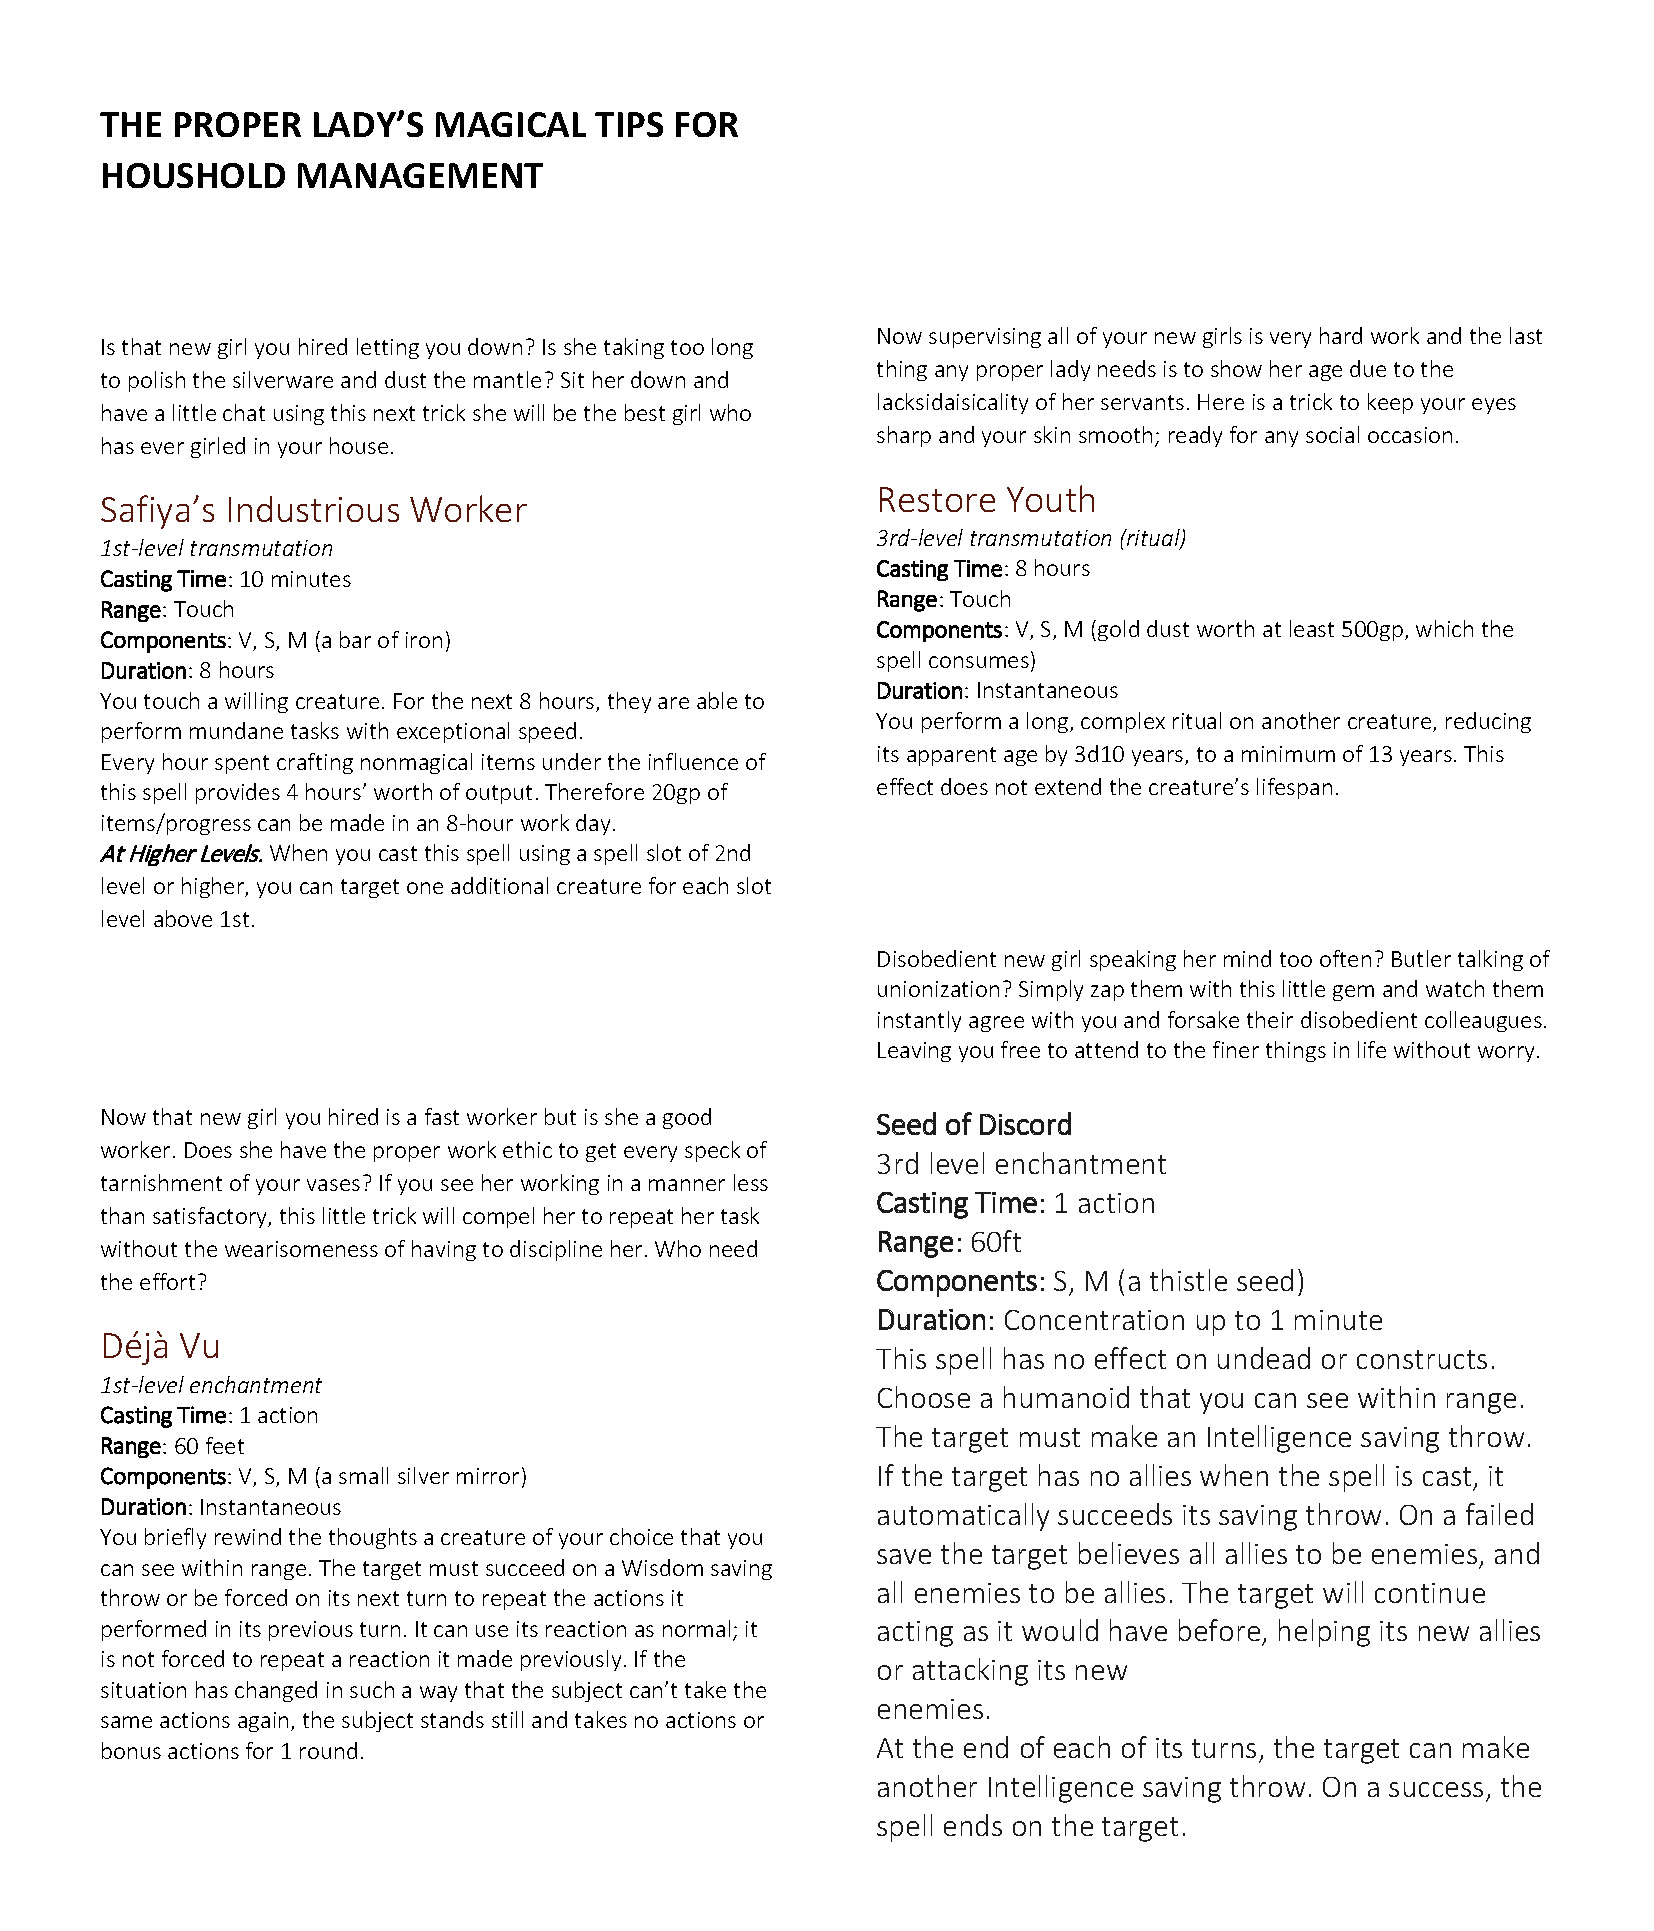 THE PROPER LADY'S MAGICAL TIPS FOR HOUSHOLD MANAGEMENT